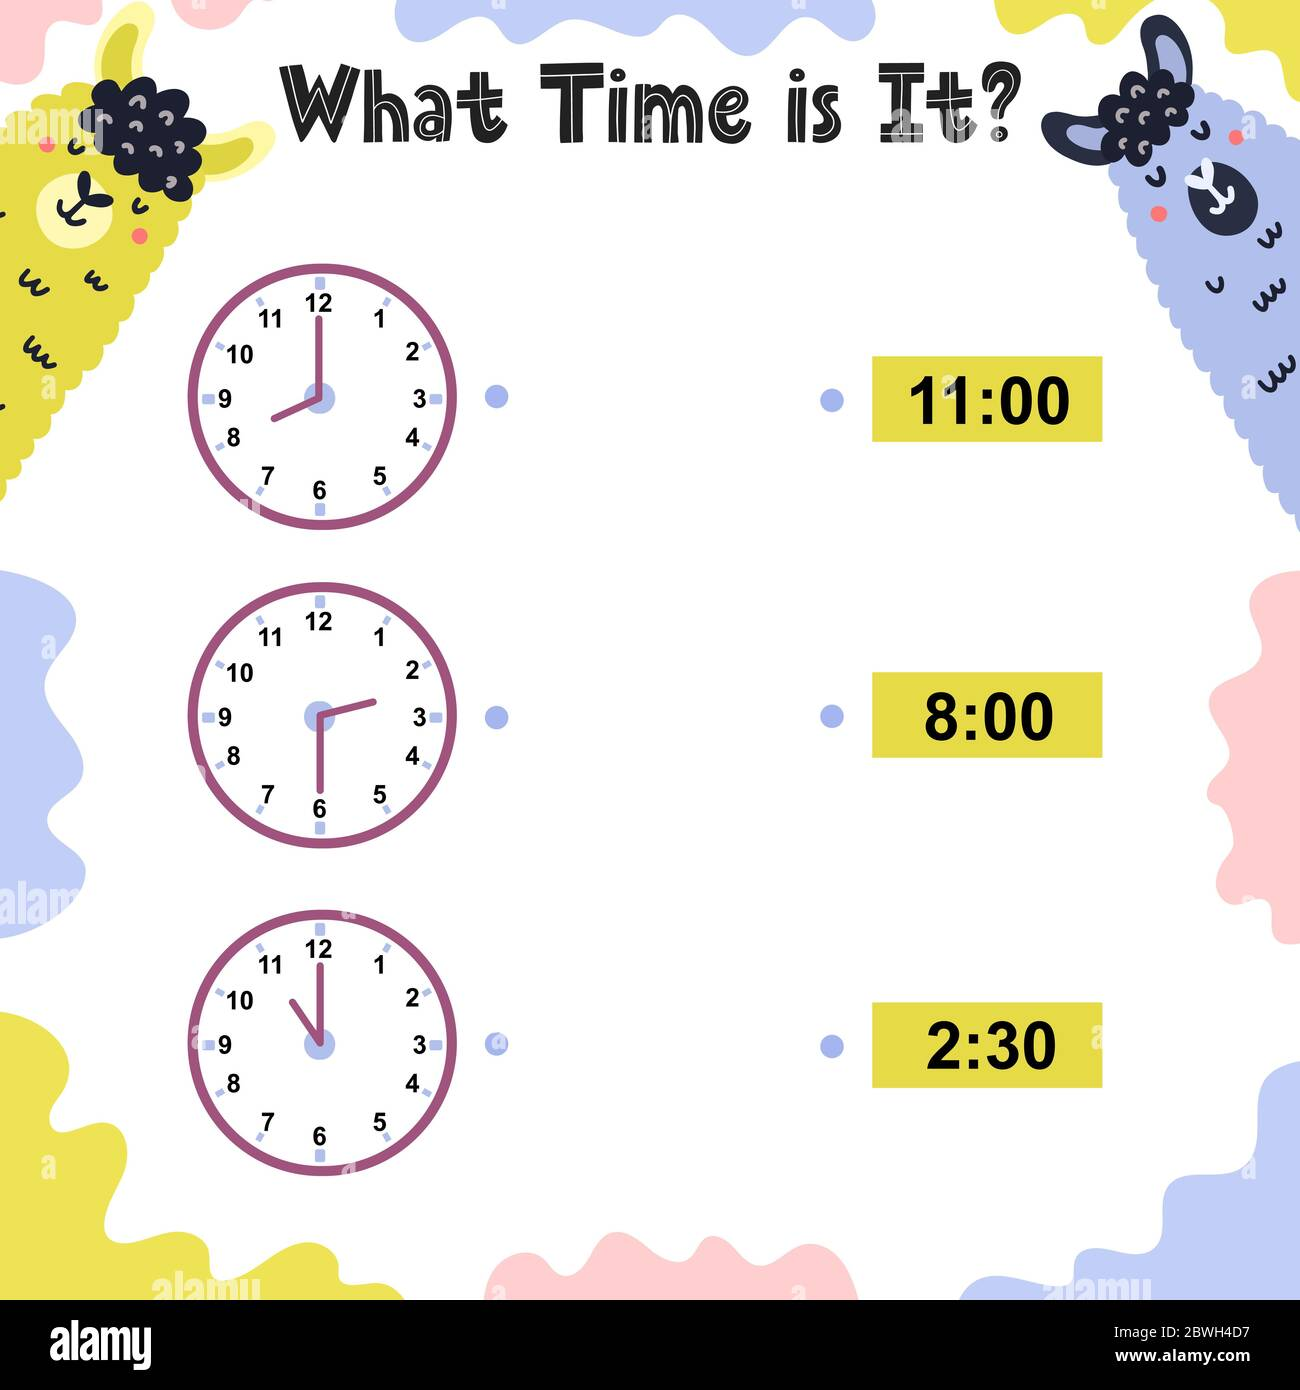 What time is it activity page for kids with clock Stock Vector ...